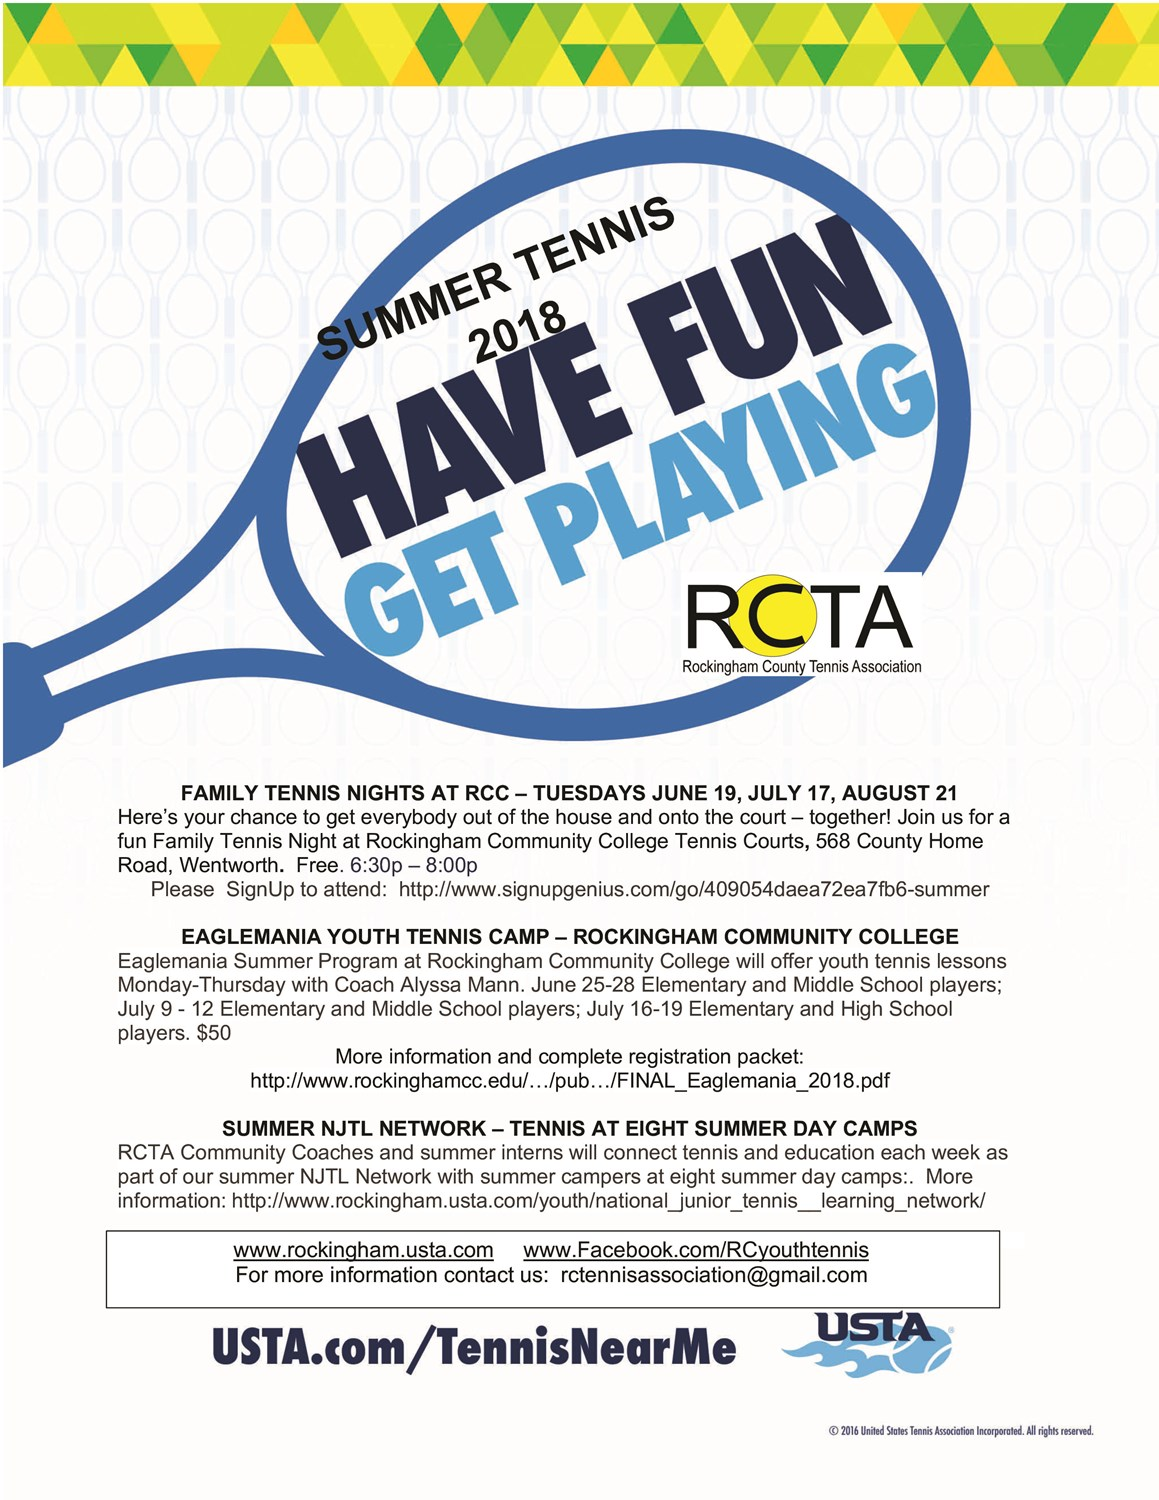 RC_Tennis_SUMMER_2018_Program_flyer-page-0_(1)